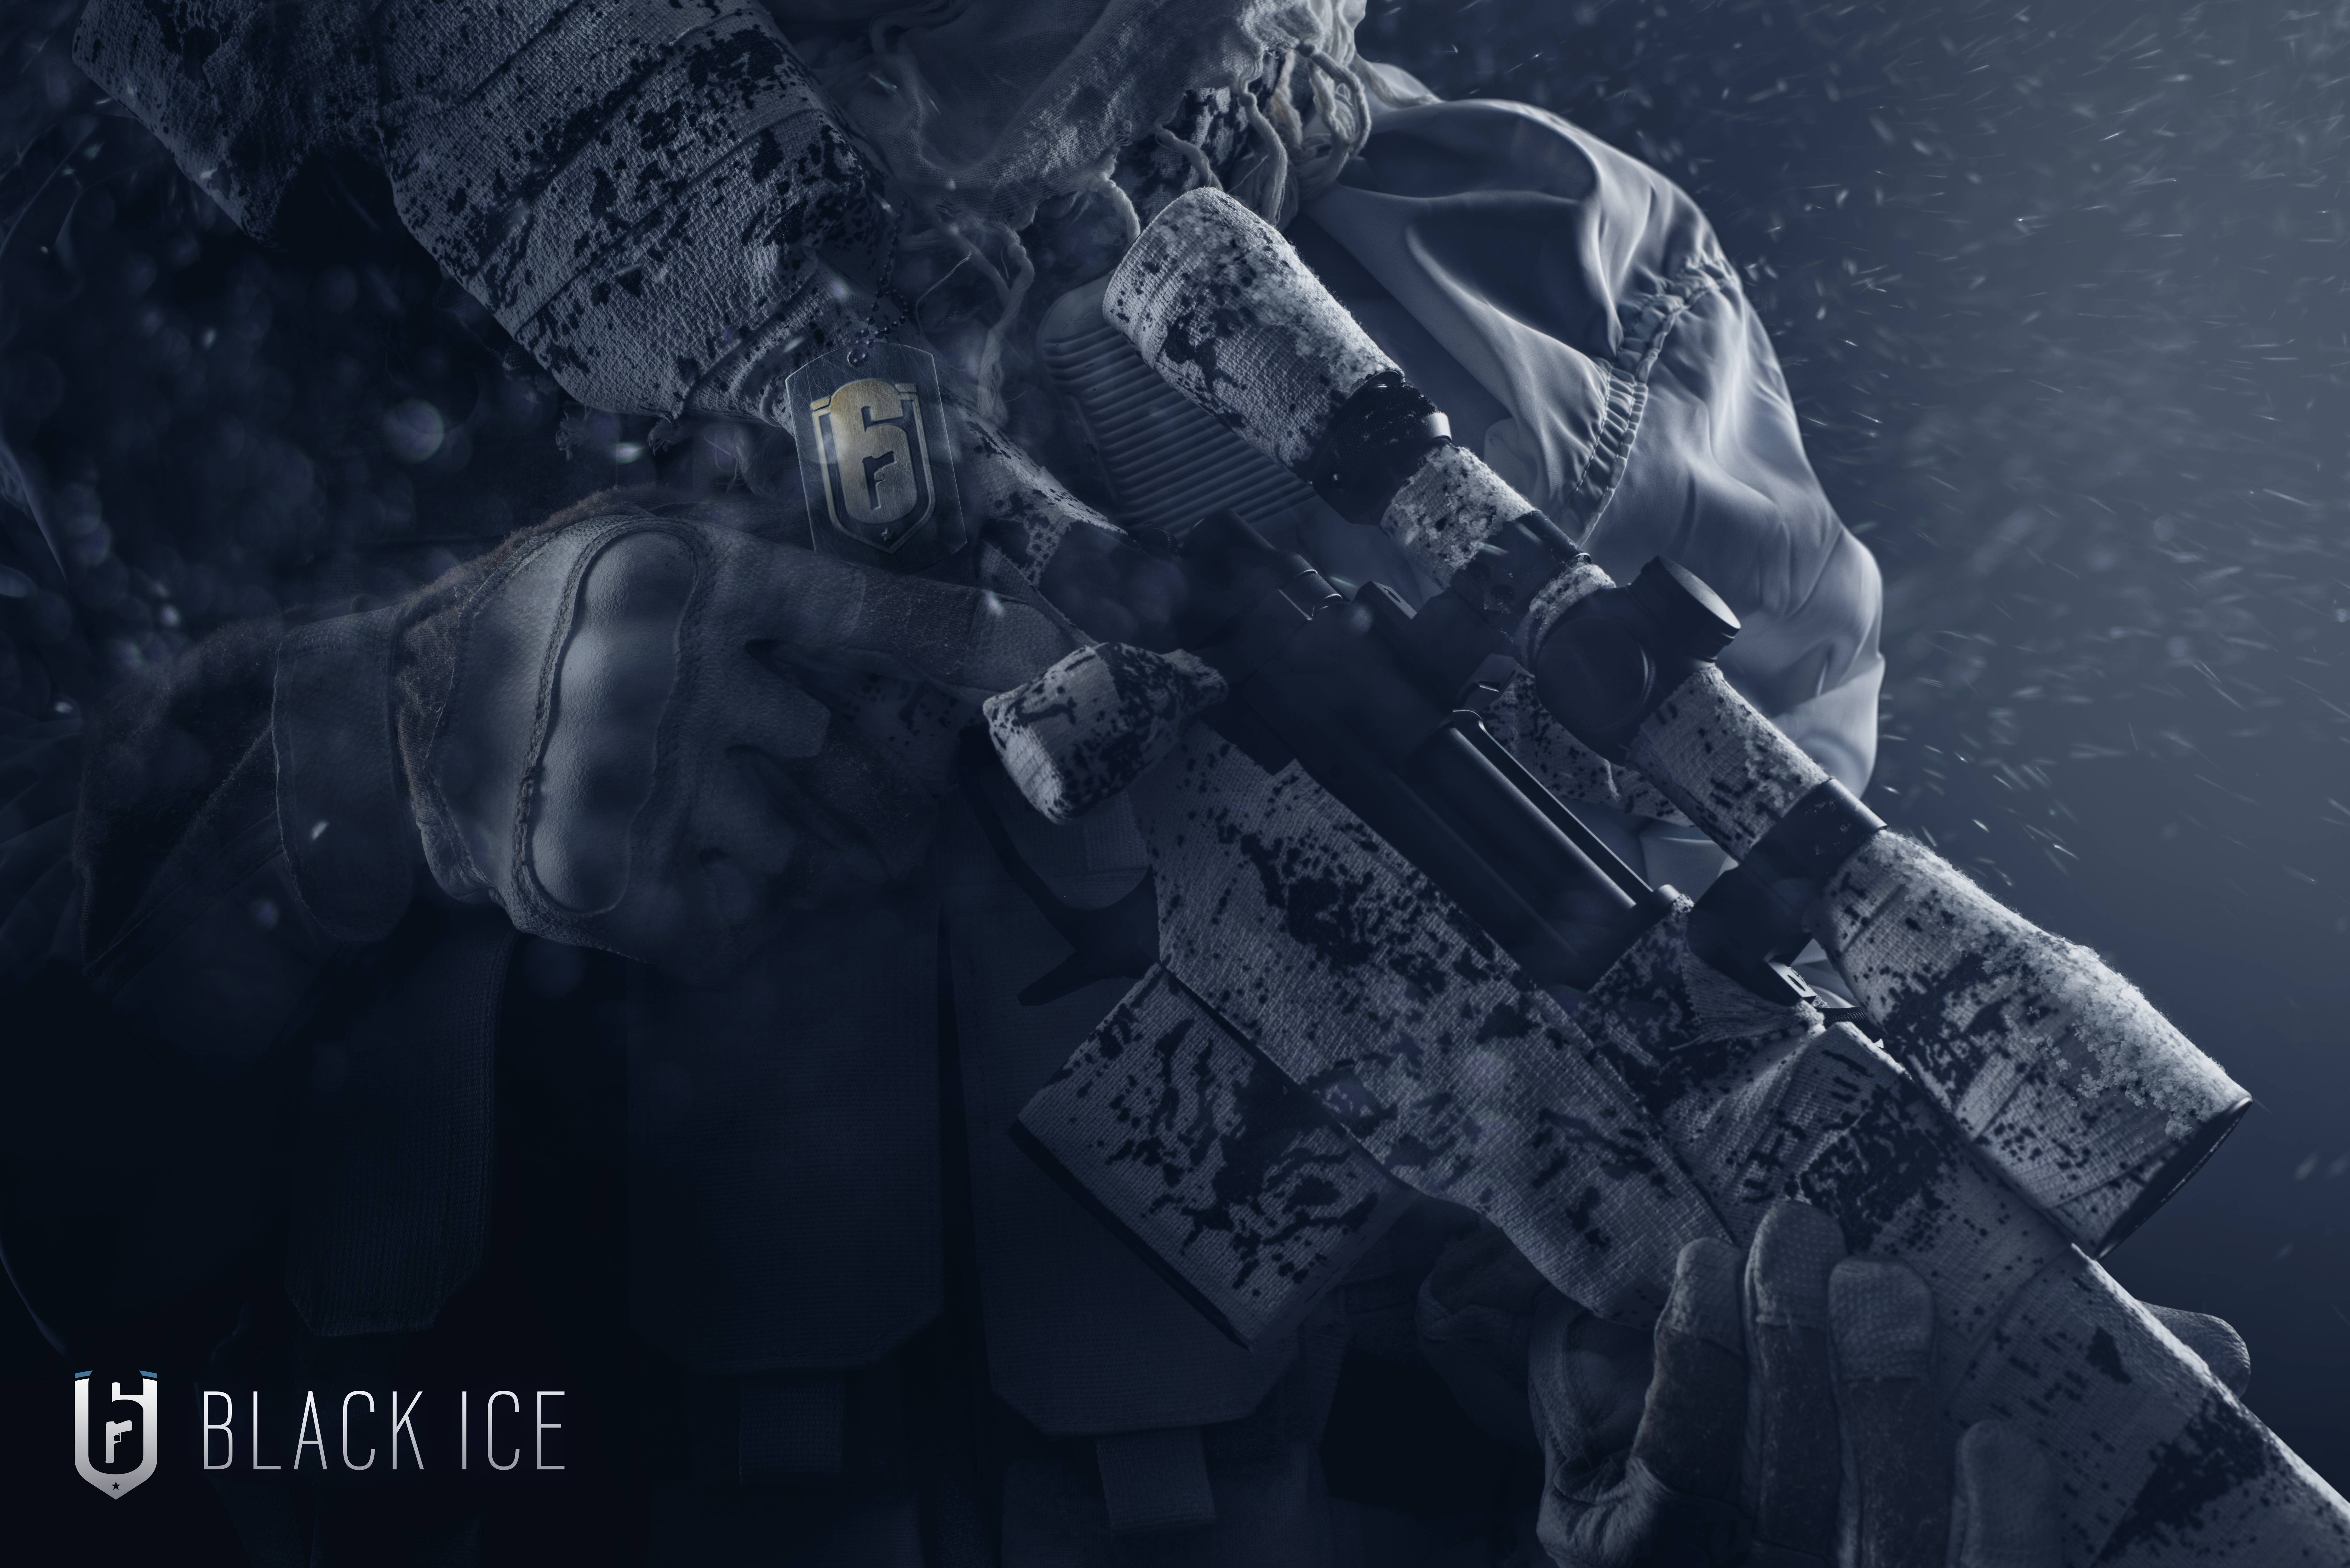 Operation Black Ice Wallpapers Wallpaper Cave